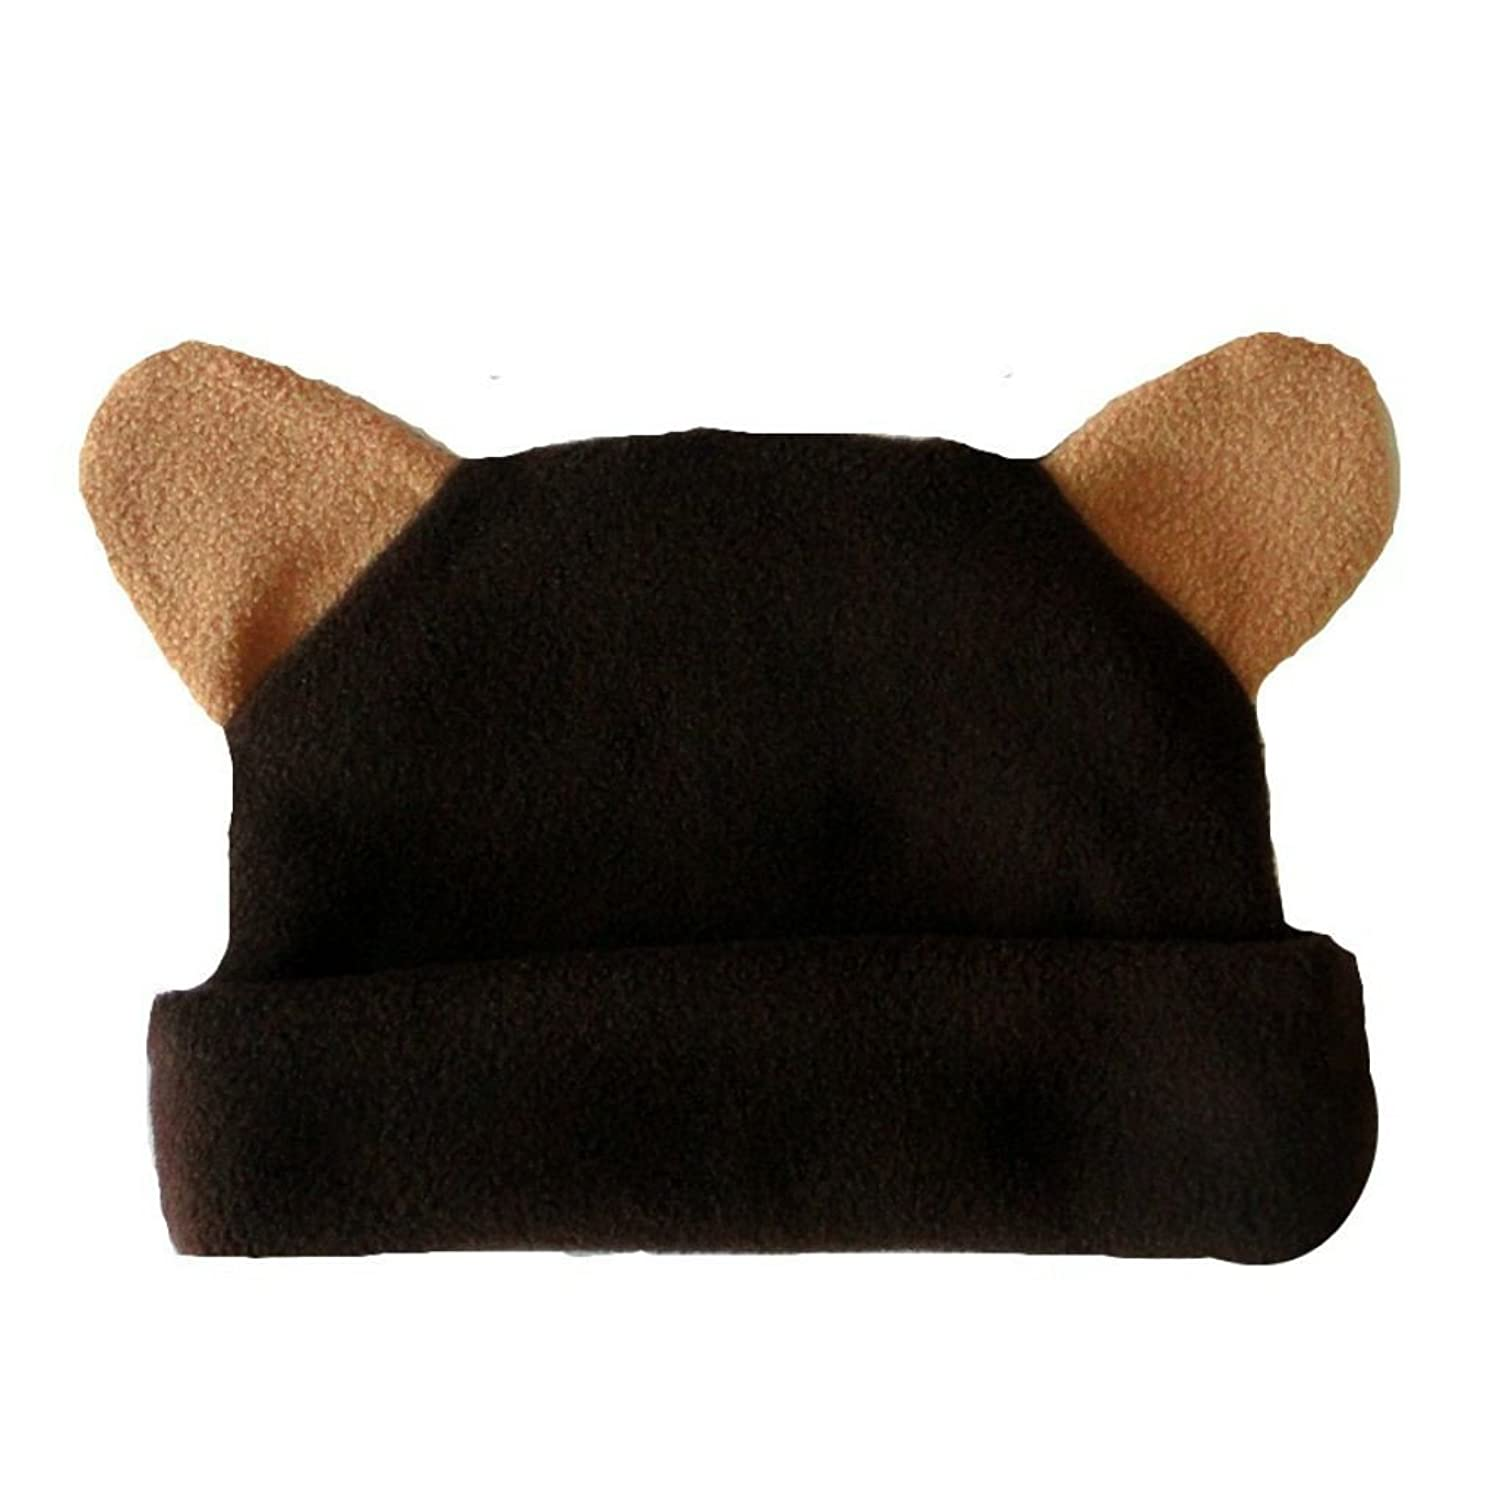 Jacqui's Unisex Baby Fleece Brown Bear Hat with Ears for cheap